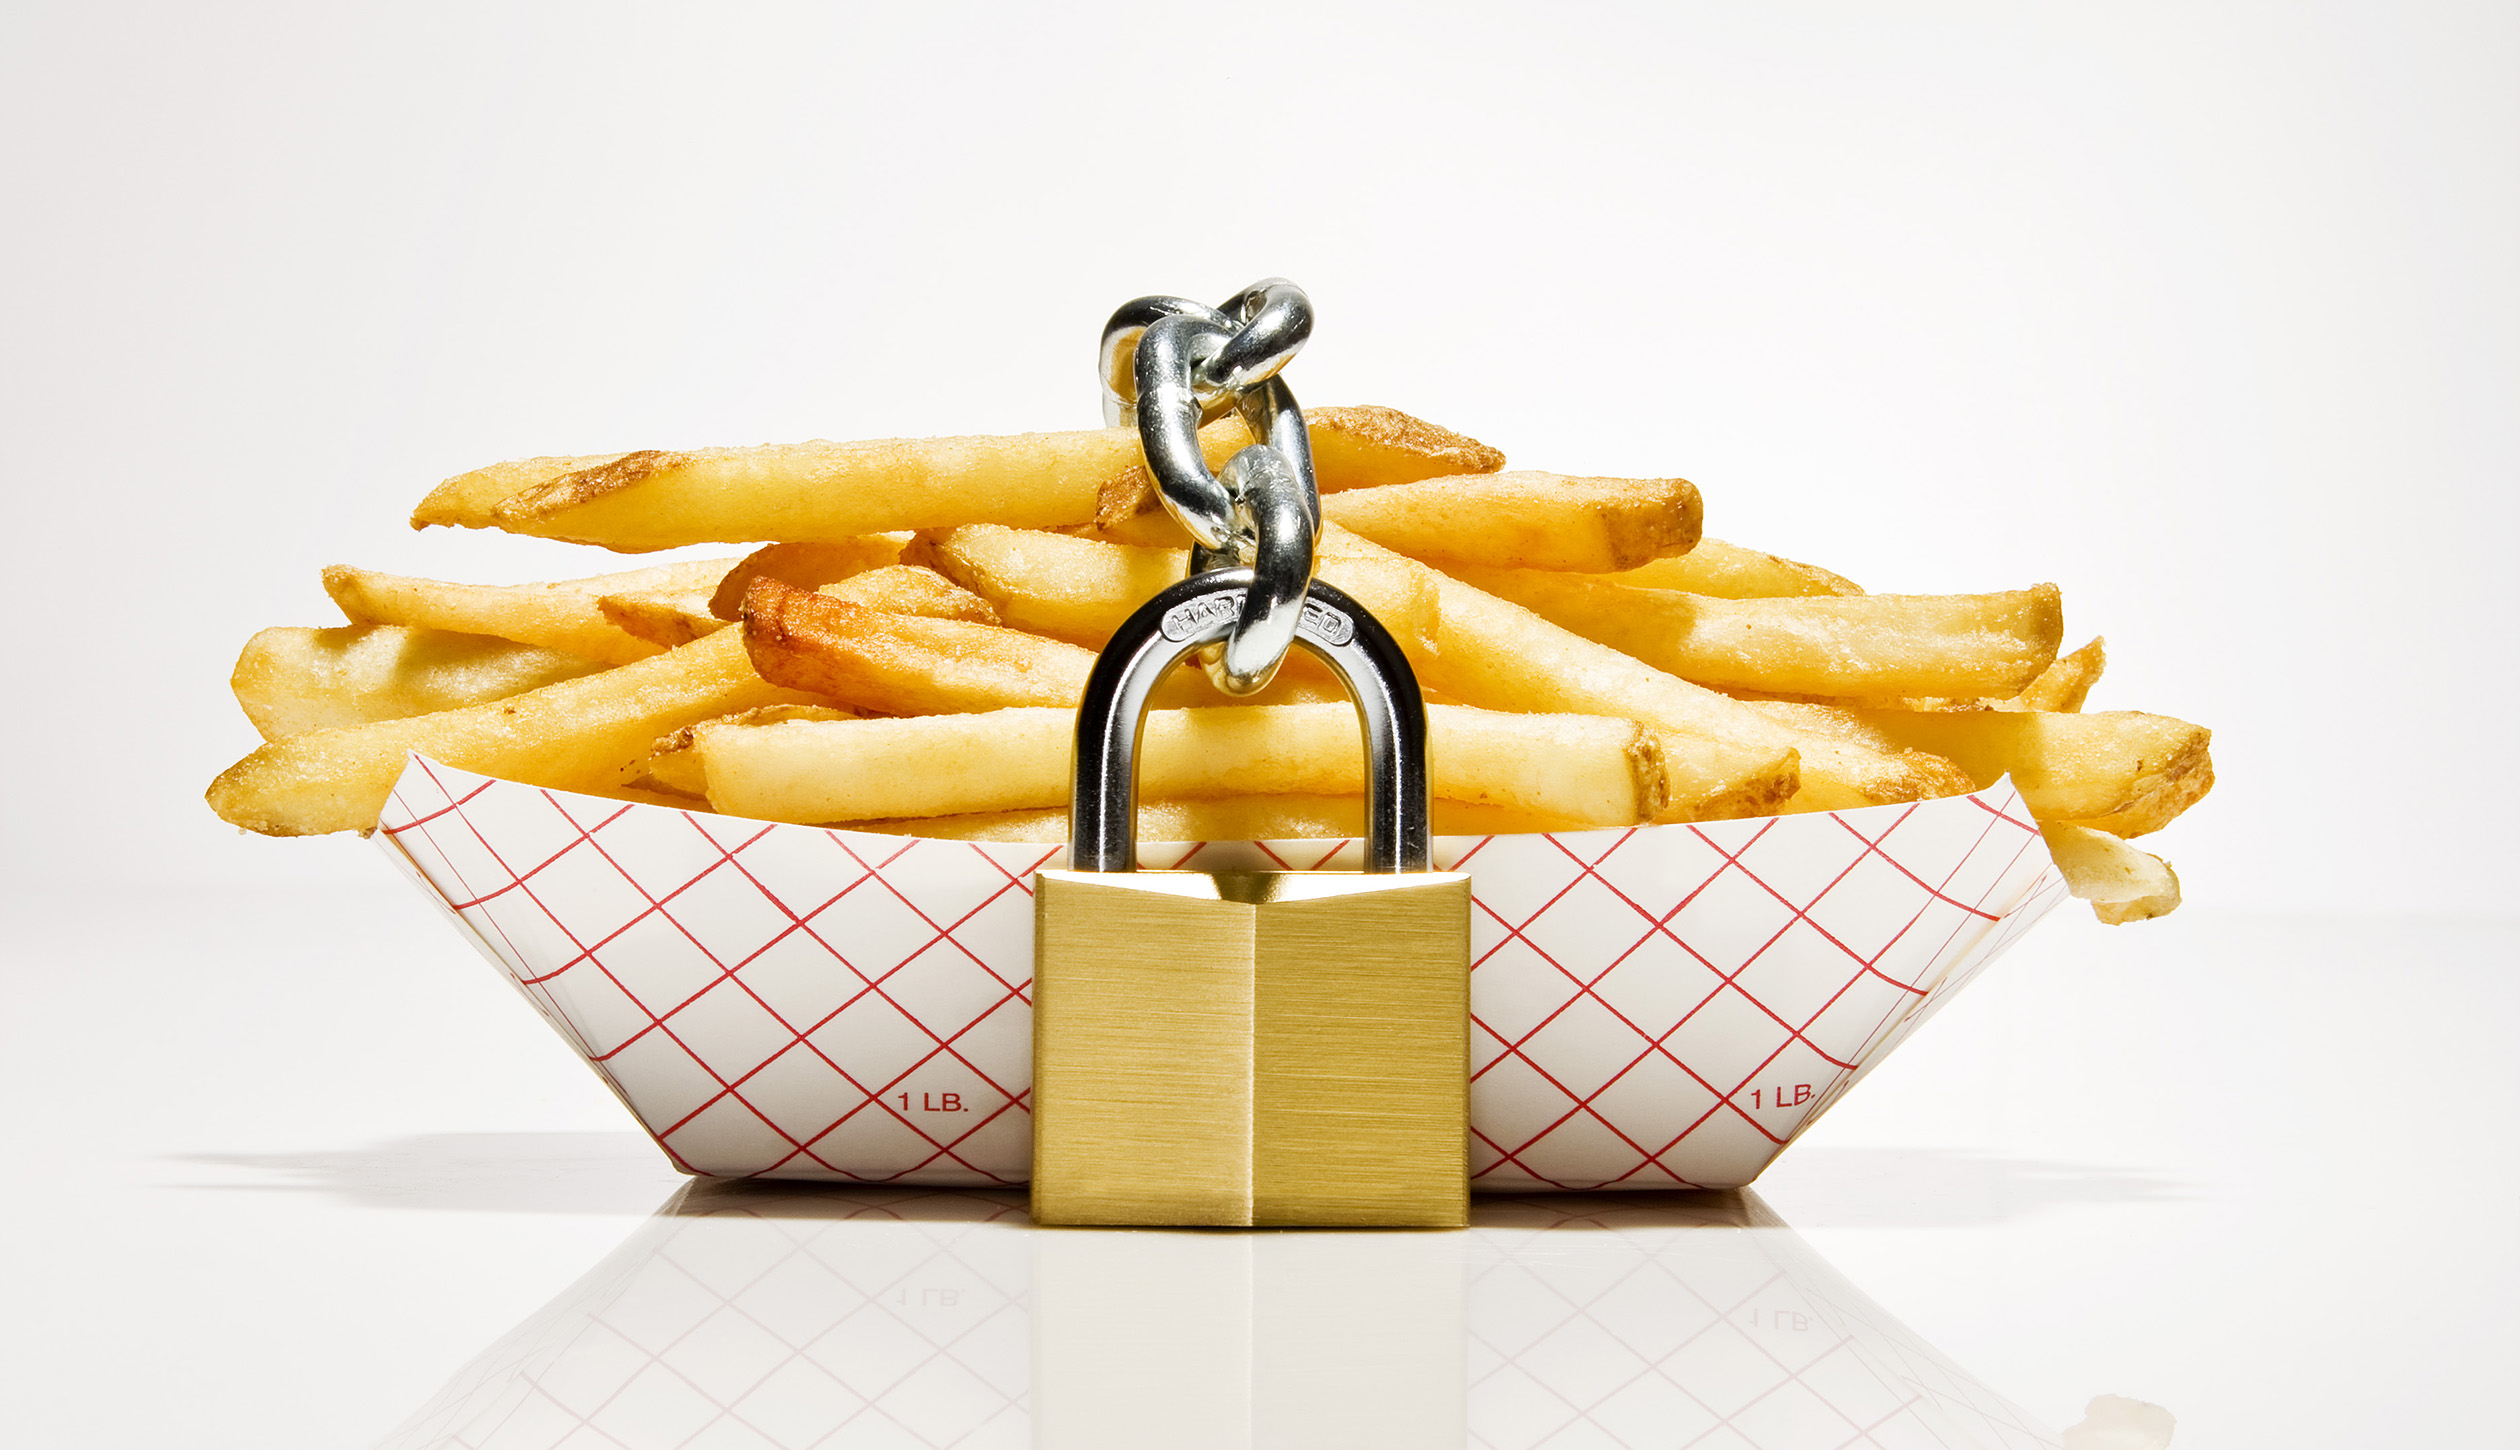 Serving of french fries with lock around them